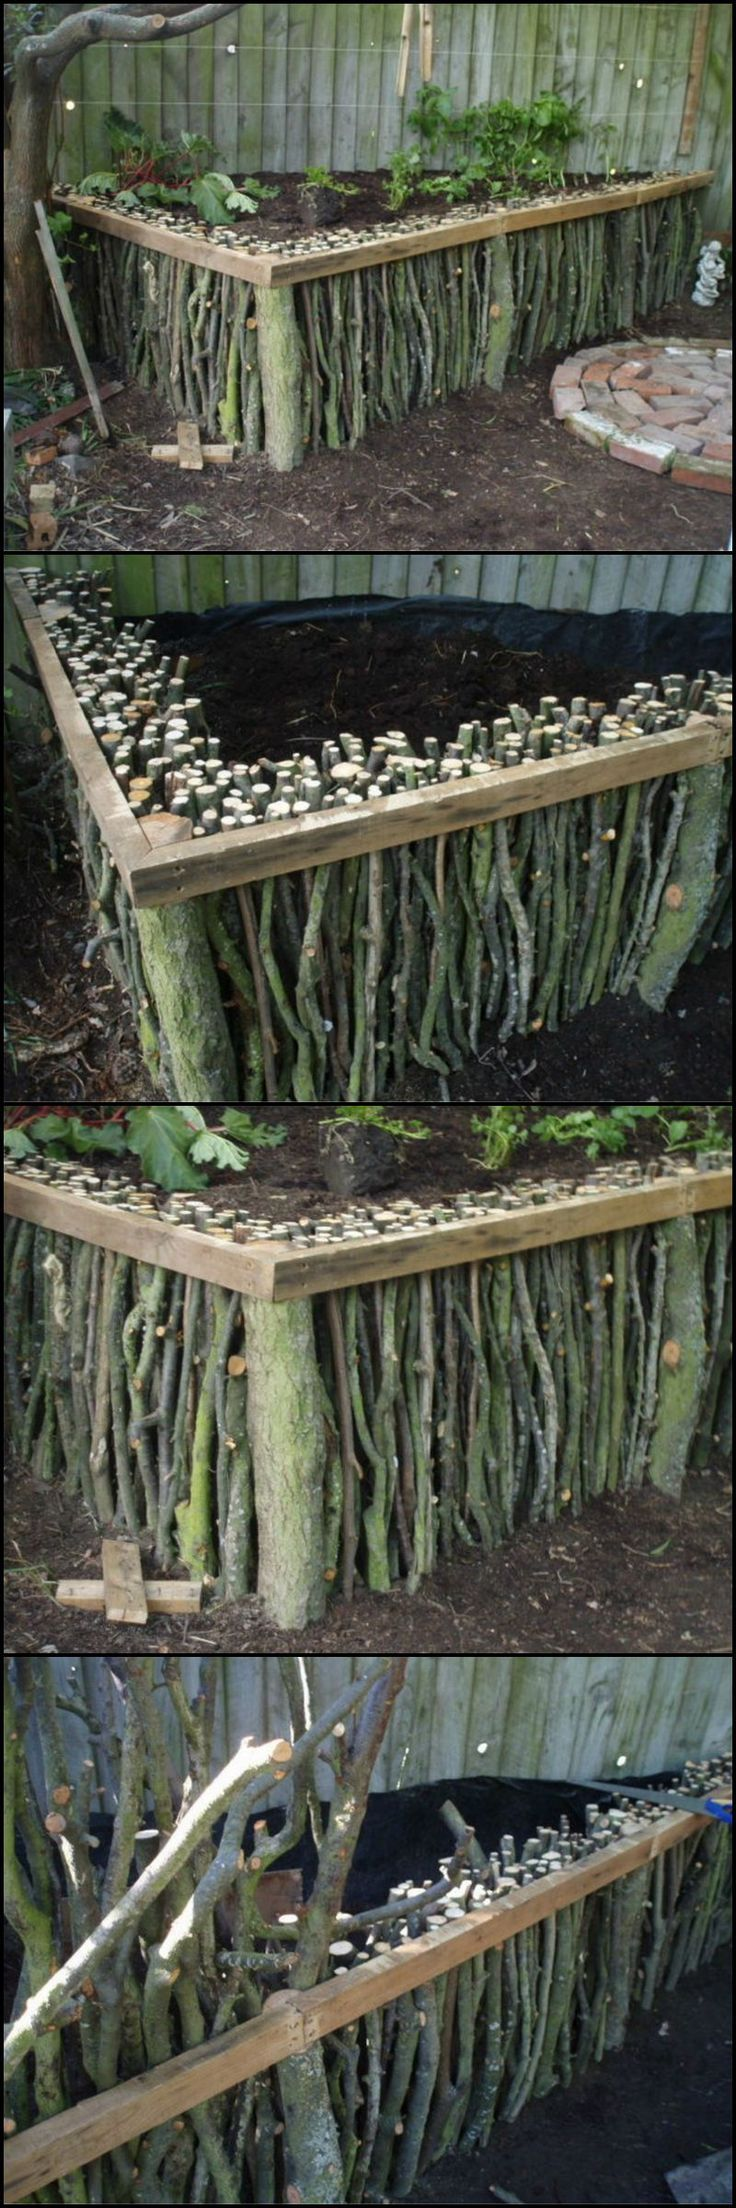 For some reason reminds me of HOBBIT GARDENING! Seriously feasible as low tech garden planter